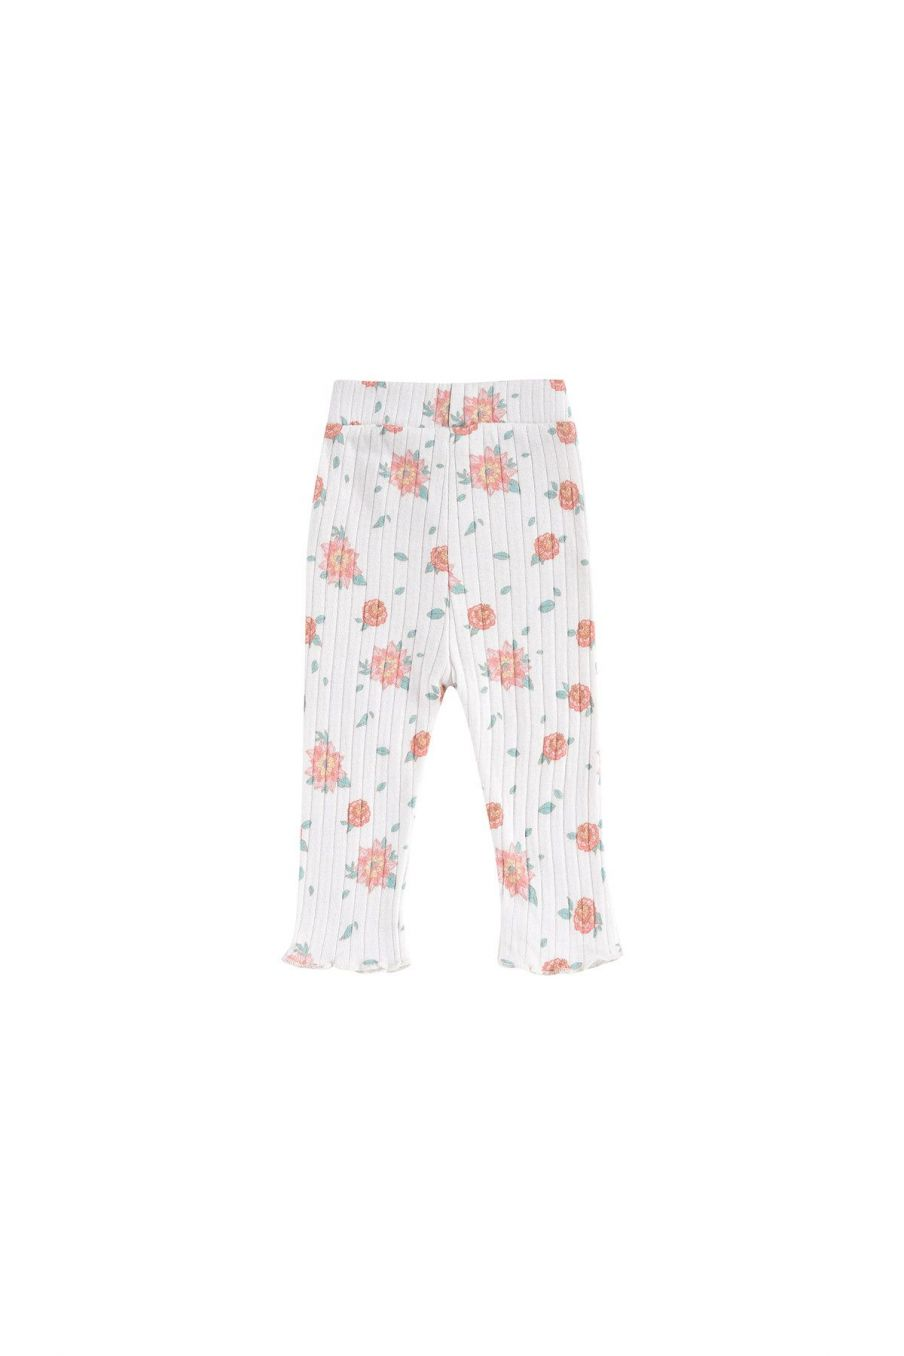 boheme chic vintage leggings bébé fille anandou off-white flowers